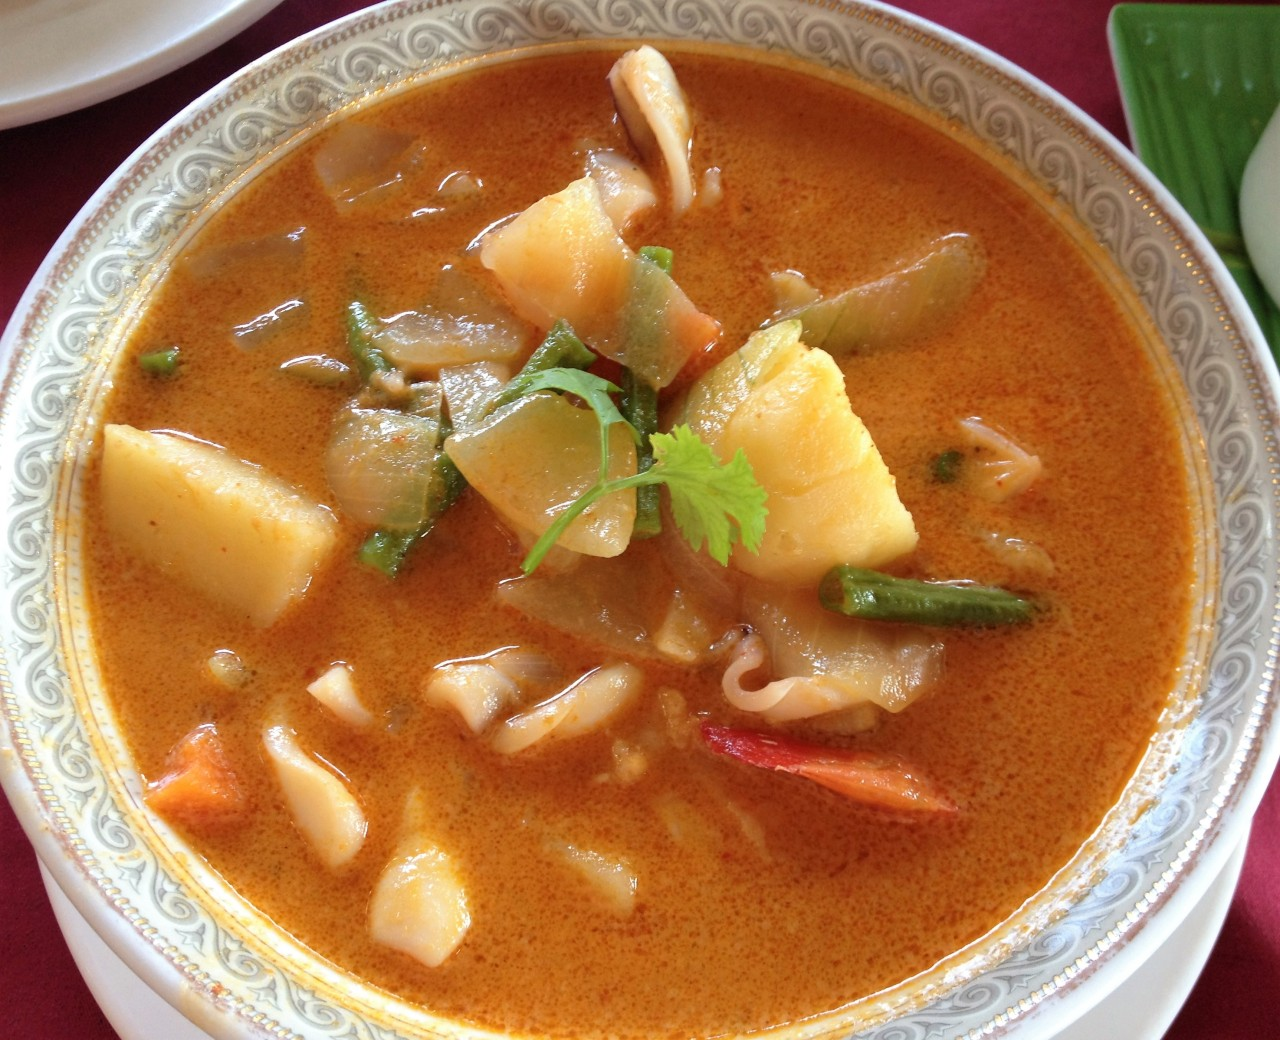 Soup for the Soul: Soups ofAsia